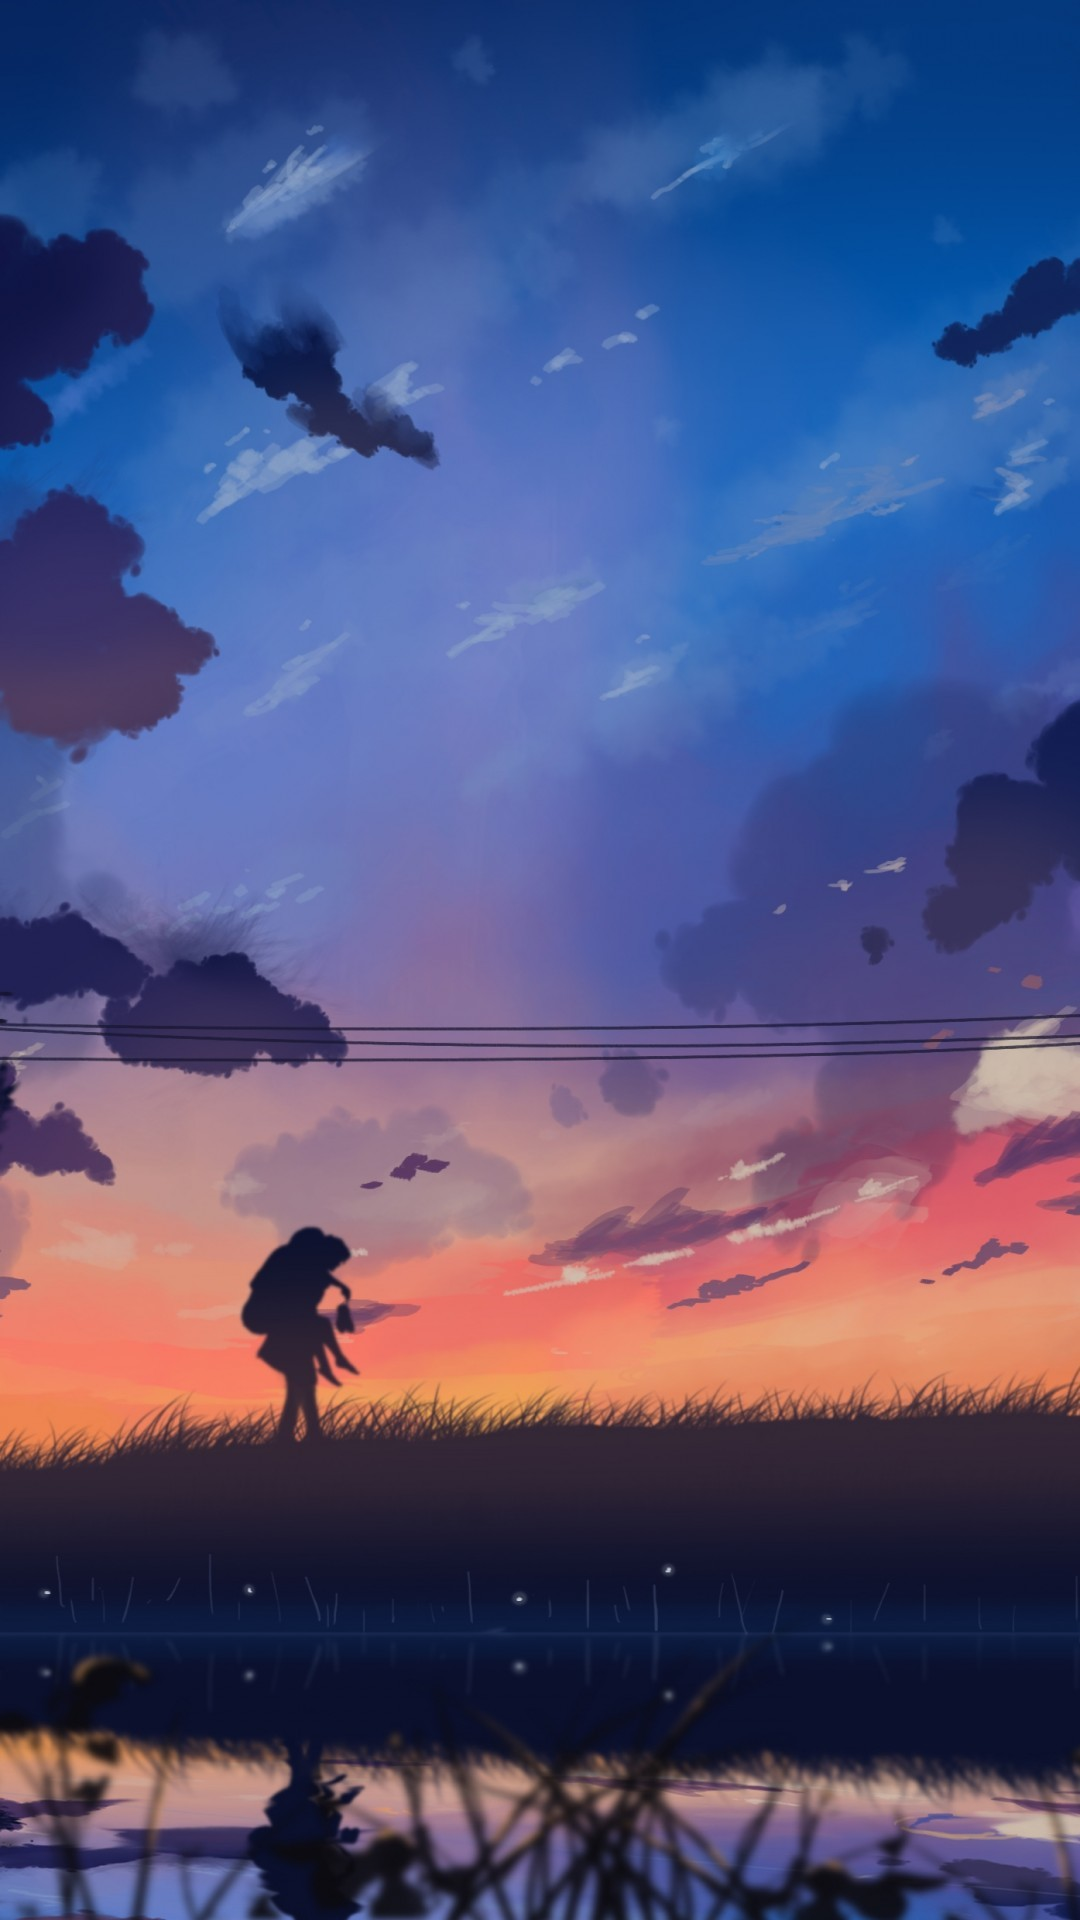 Anime Landscape, Windy, Tree, Painting, Clouds